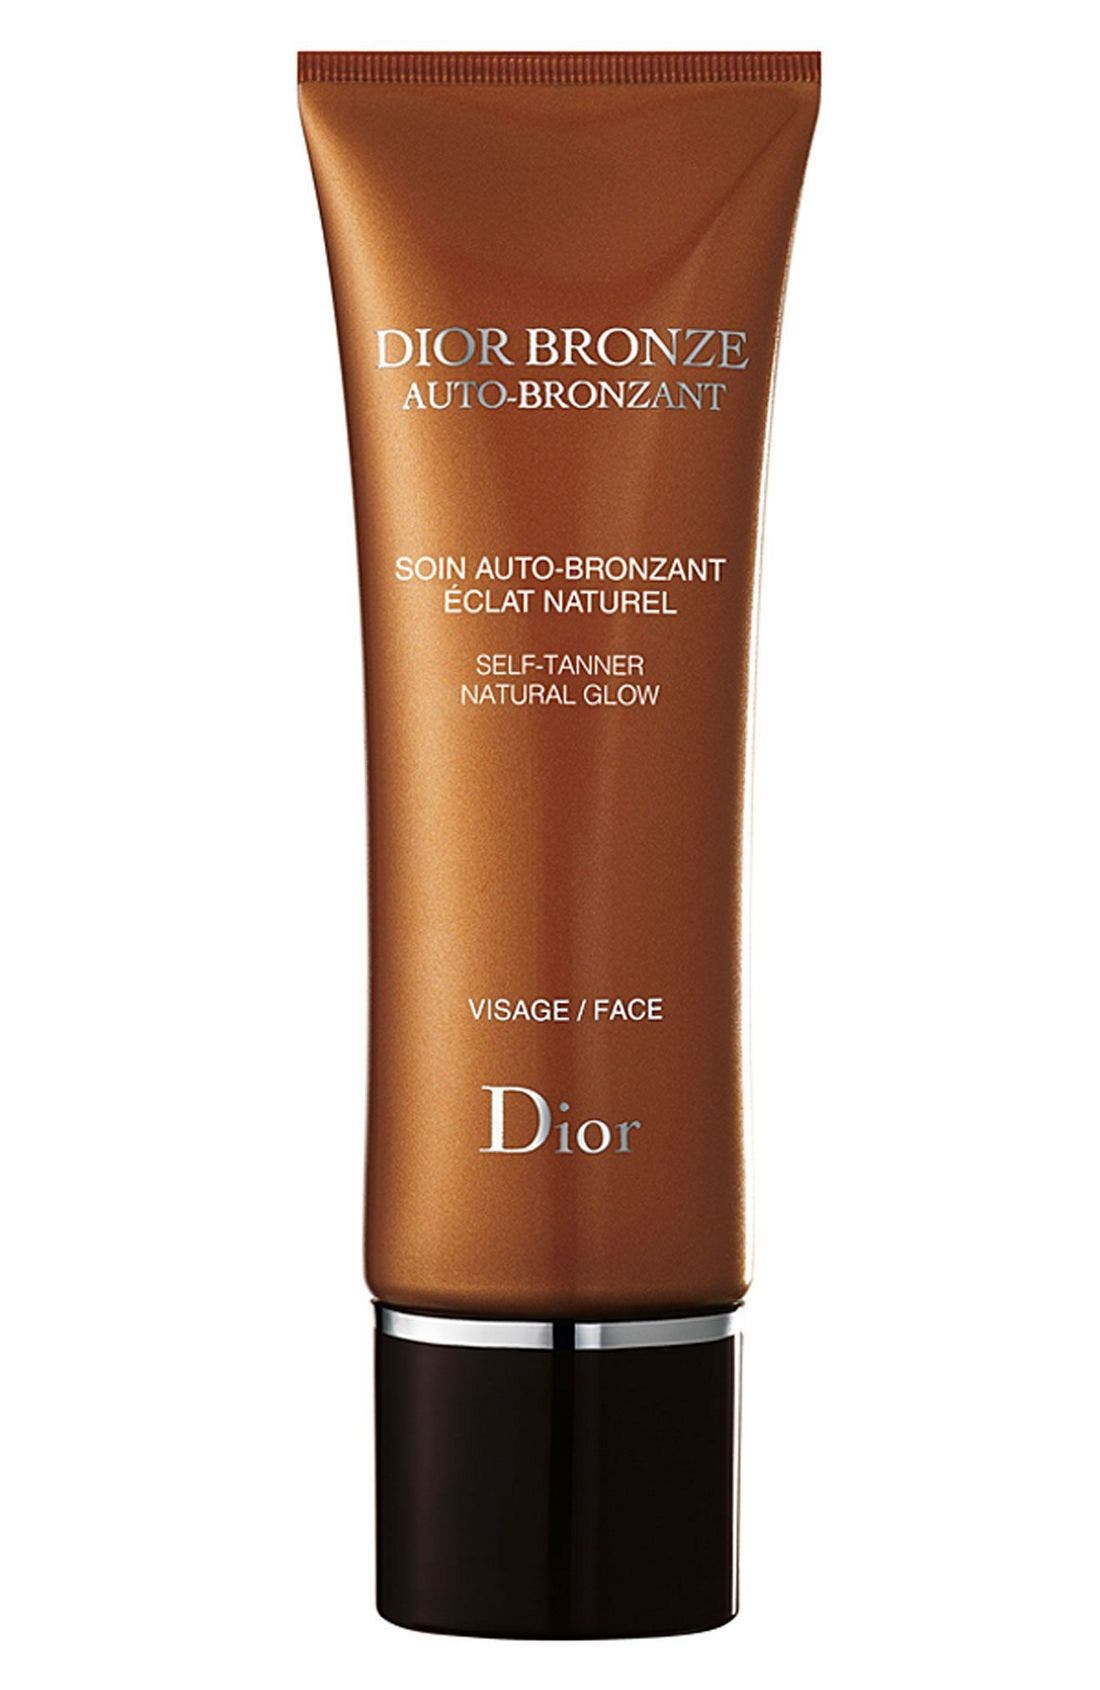 'DiorBronze' Self-Tanner: Natural Glow Face, Main, color, 000